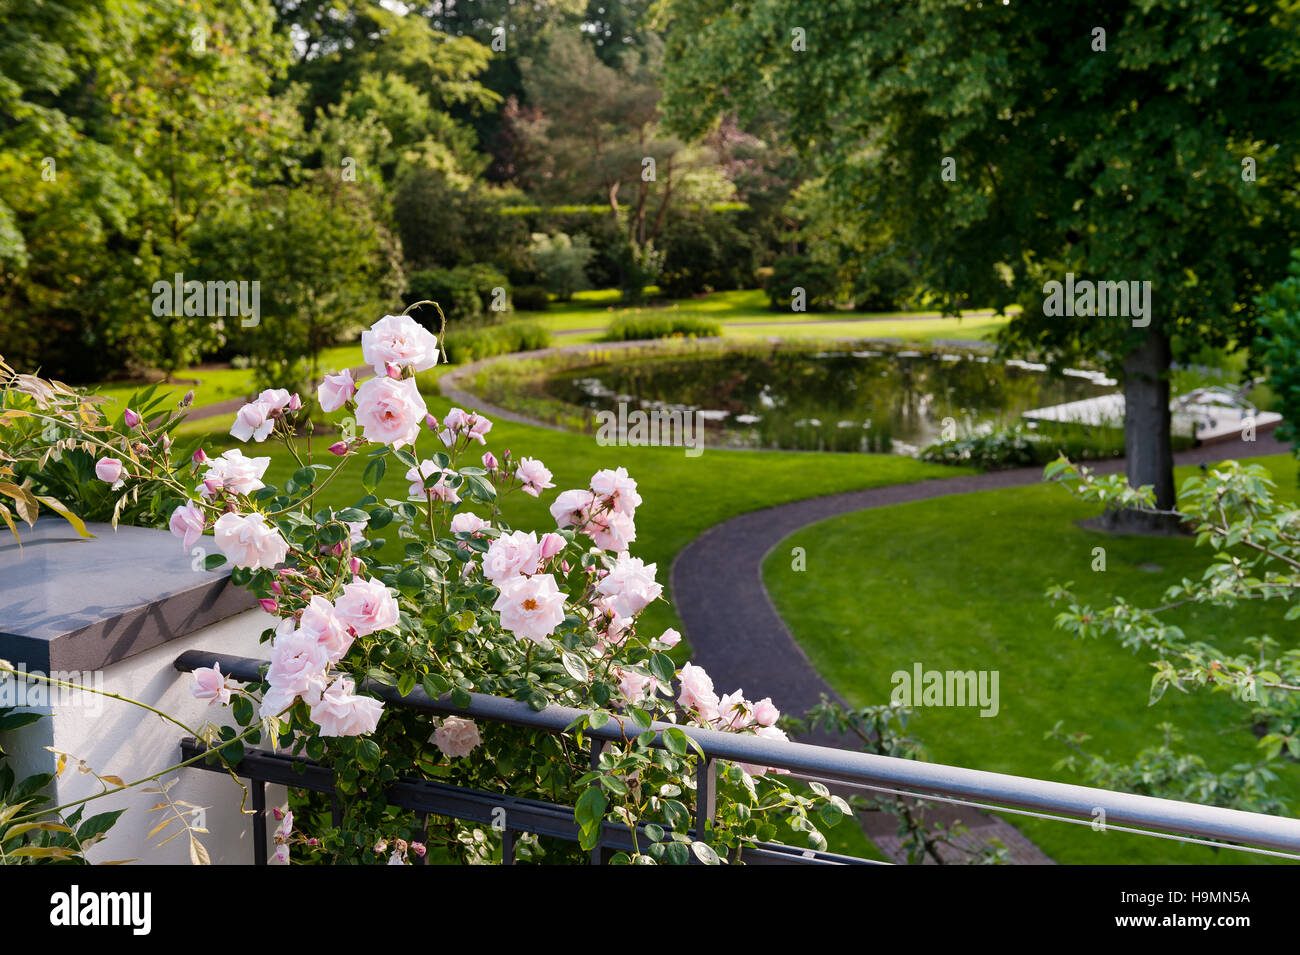 Flowering rose on railings in grounds of German home - Stock Image